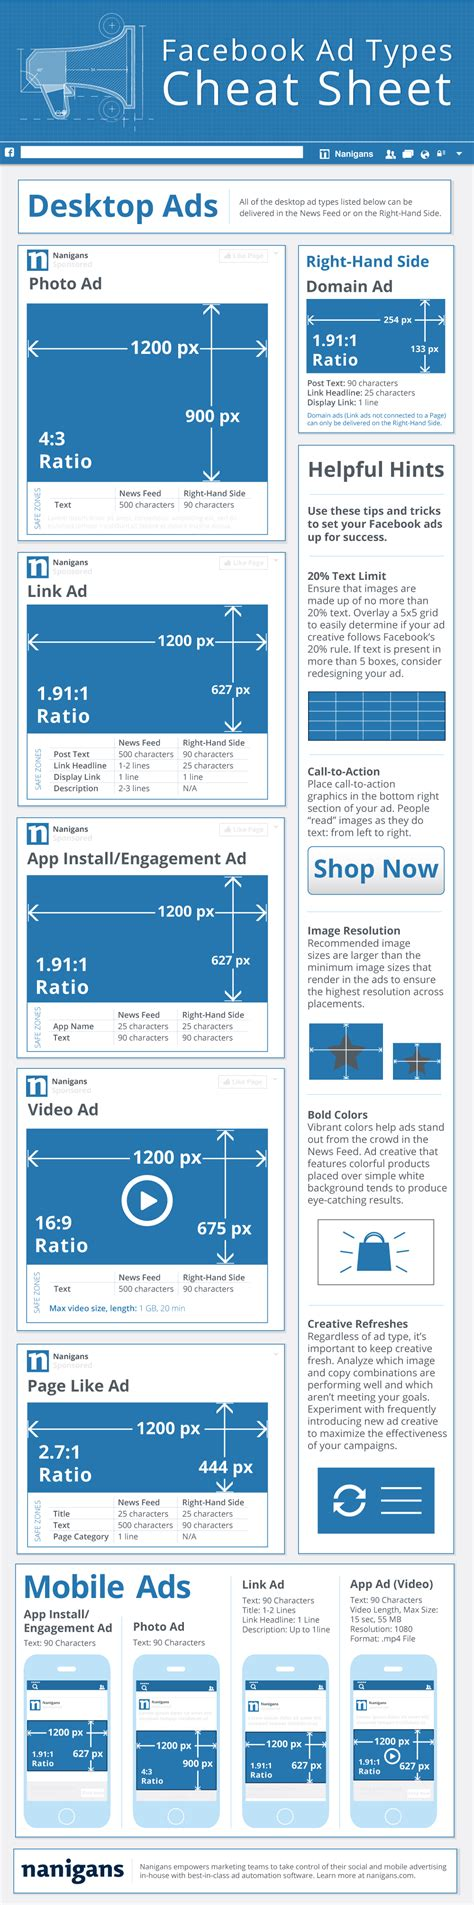 Facebook Ad Types Cheat Sheet [infographic] Nanigans